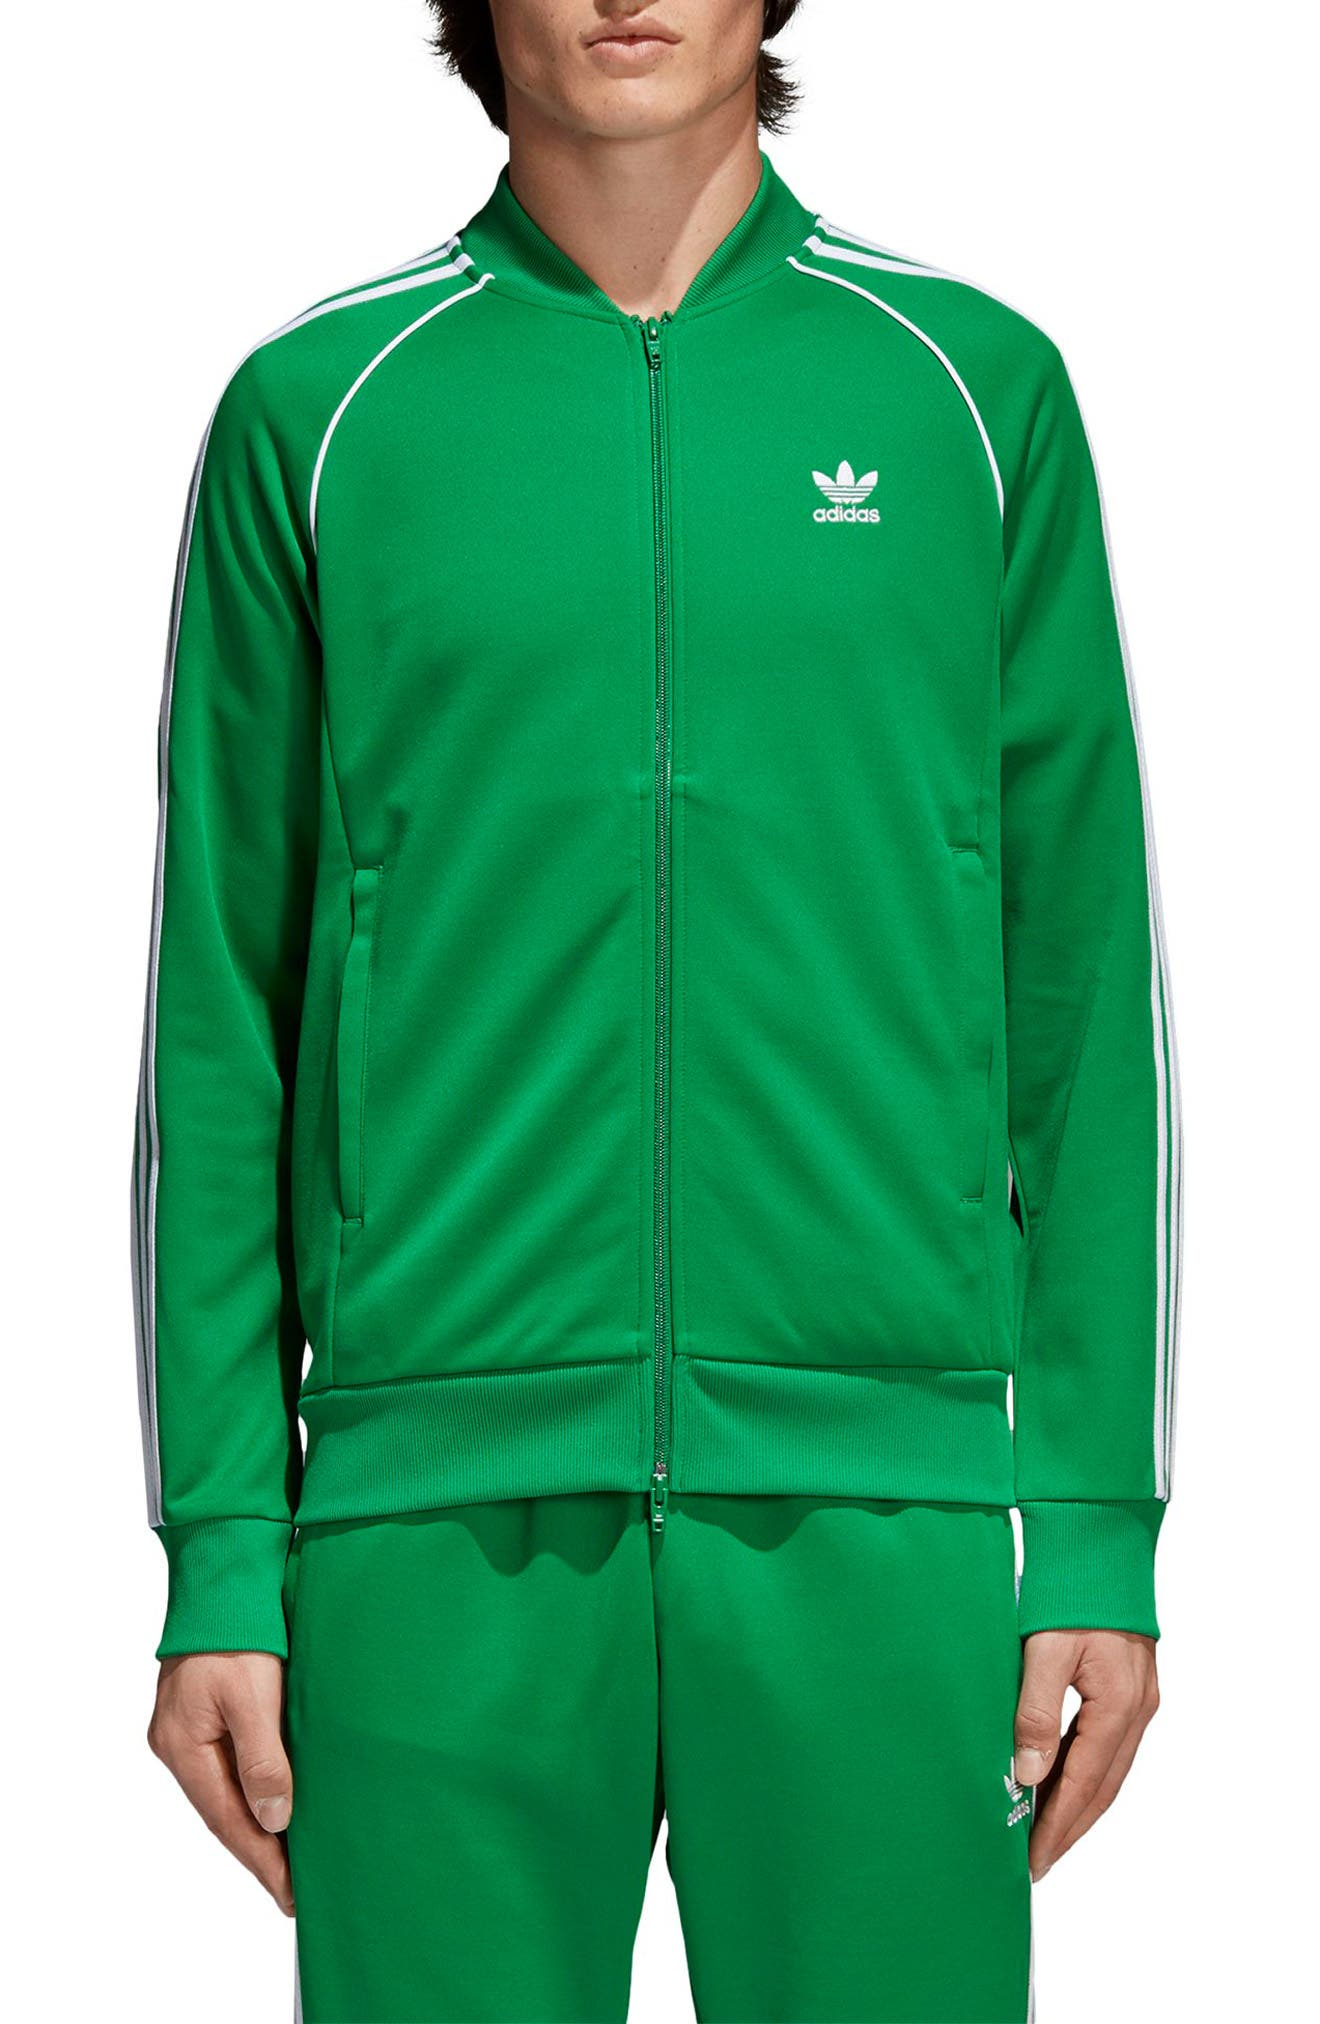 SST Track Jacket,                         Main,                         color,